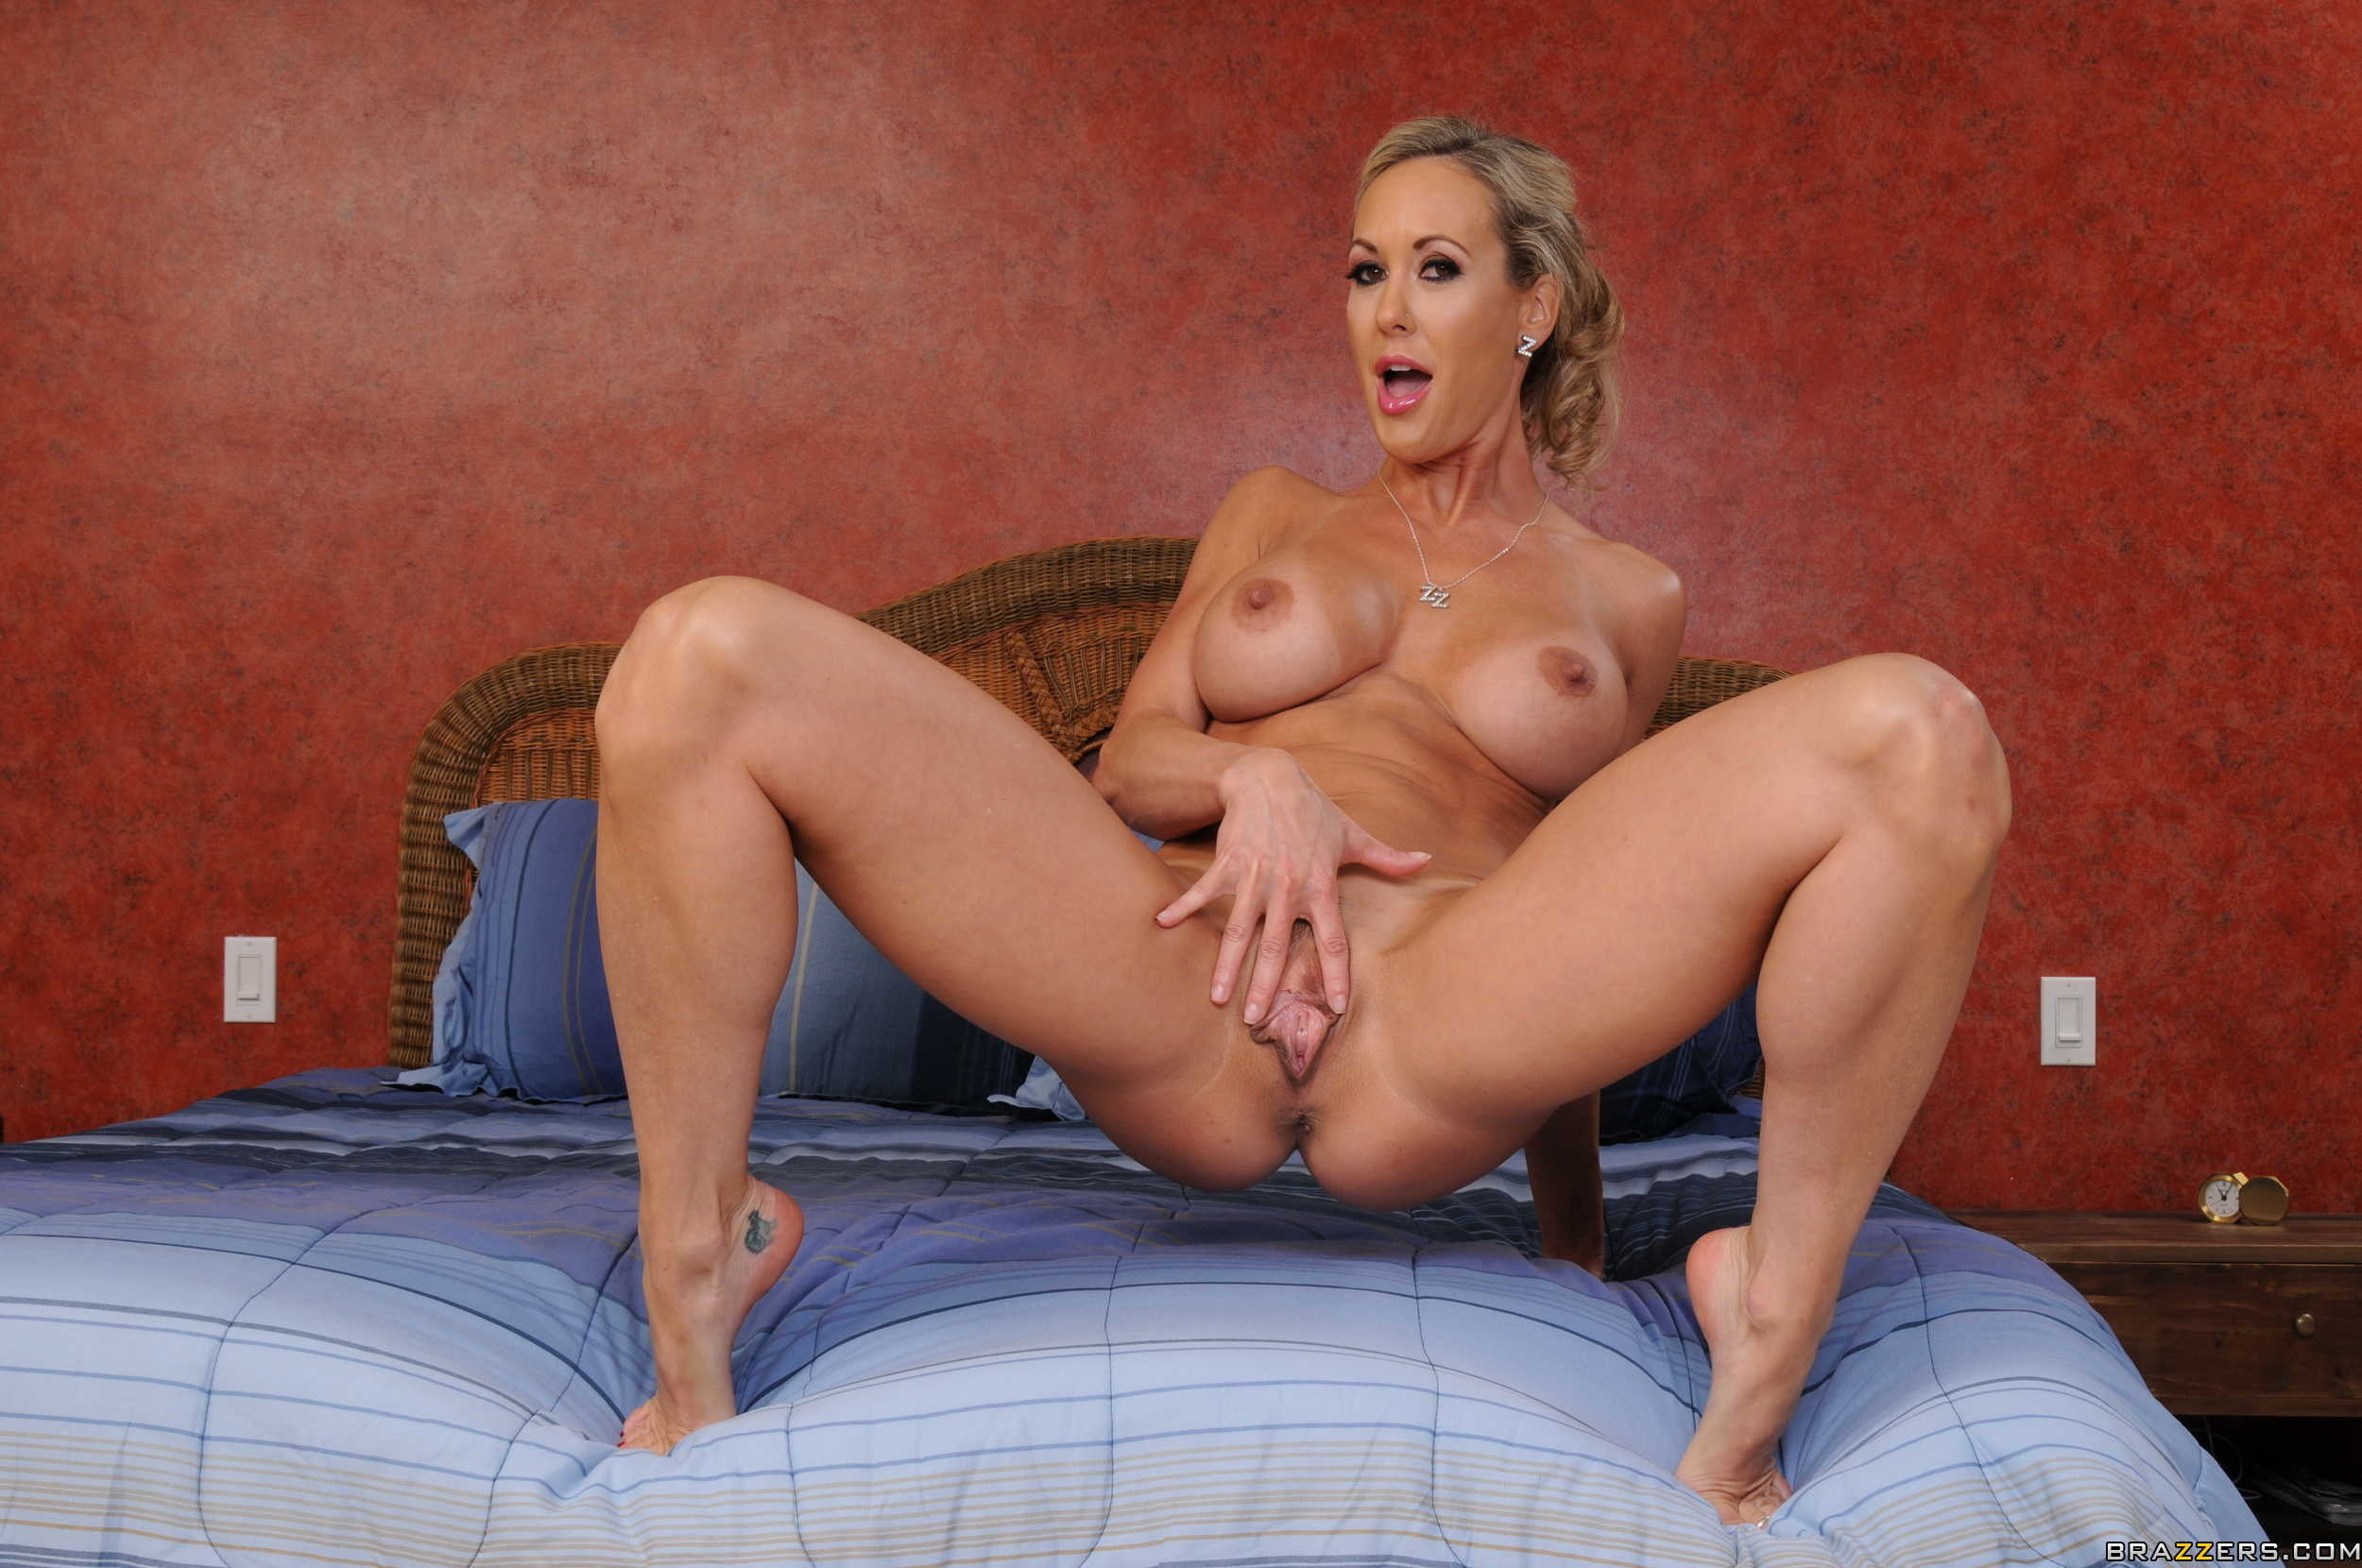 truth or dare questions 18 dirty #sexy#beautiful#gorgeous#blonde#milf#nude#bigtits#tits#shaved#pussy#spread#legs#pussylips#tanlines#tattoo#nipples